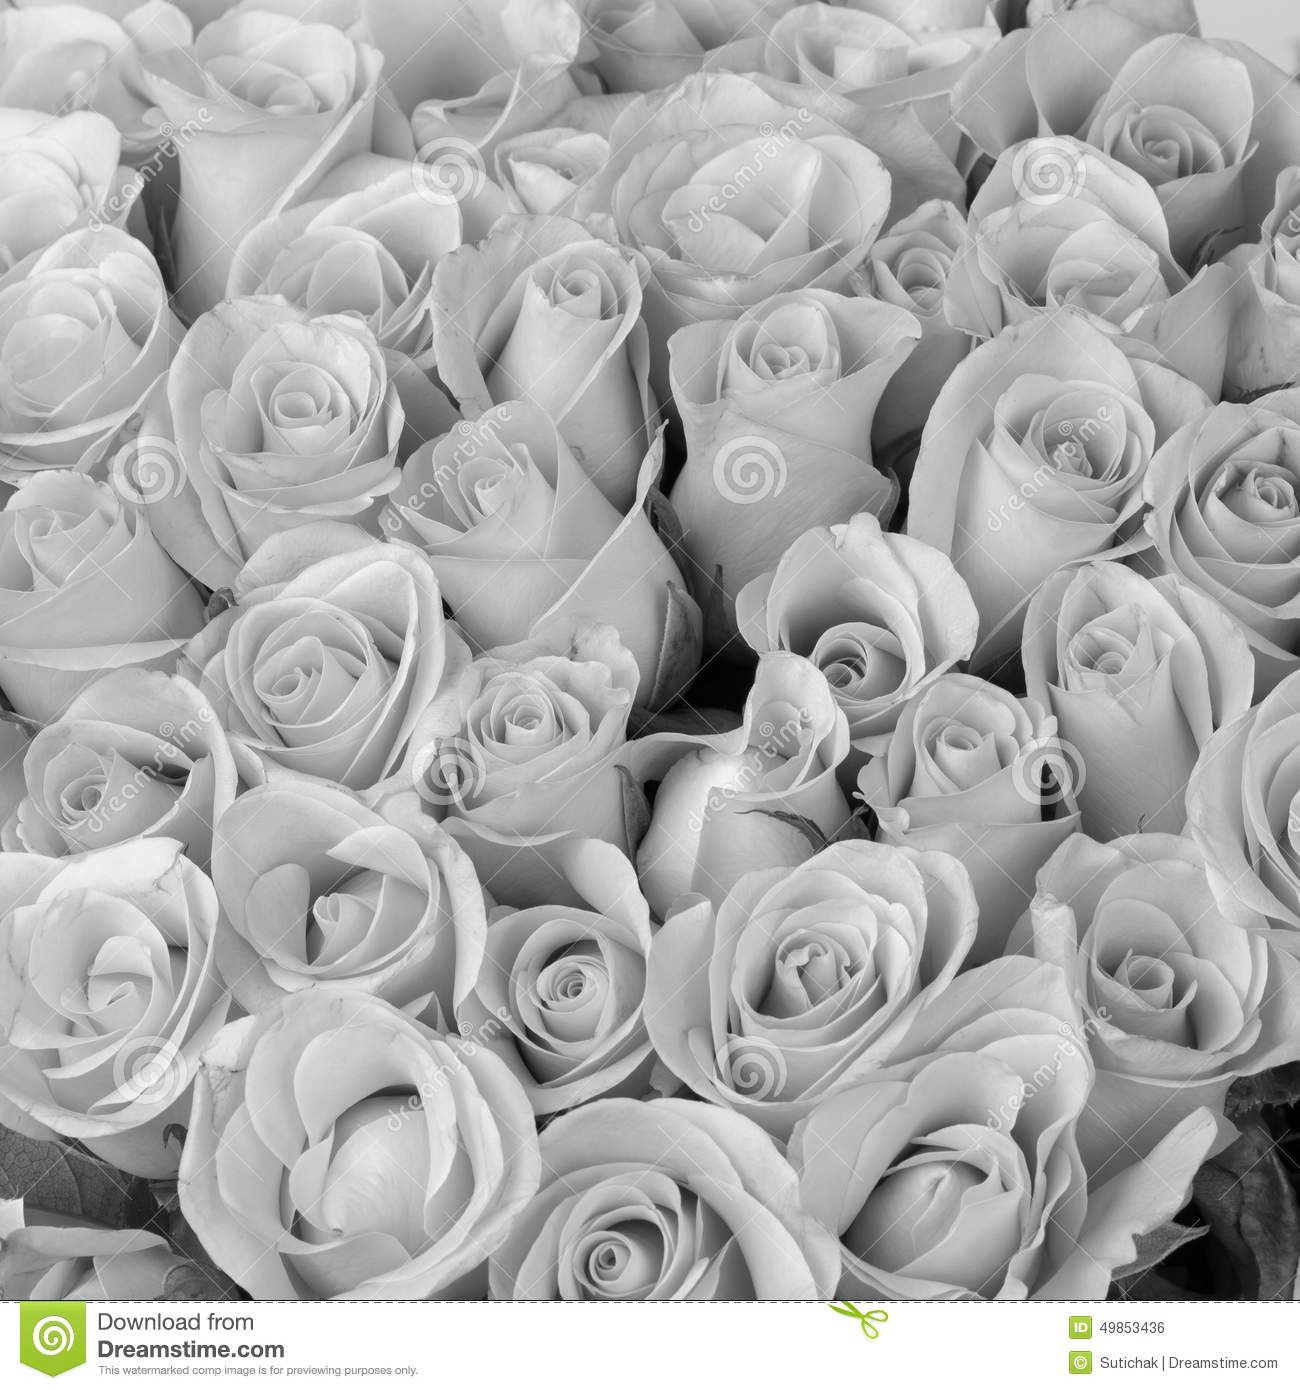 Rose flower bouquet black and white color stock photo image of download comp mightylinksfo